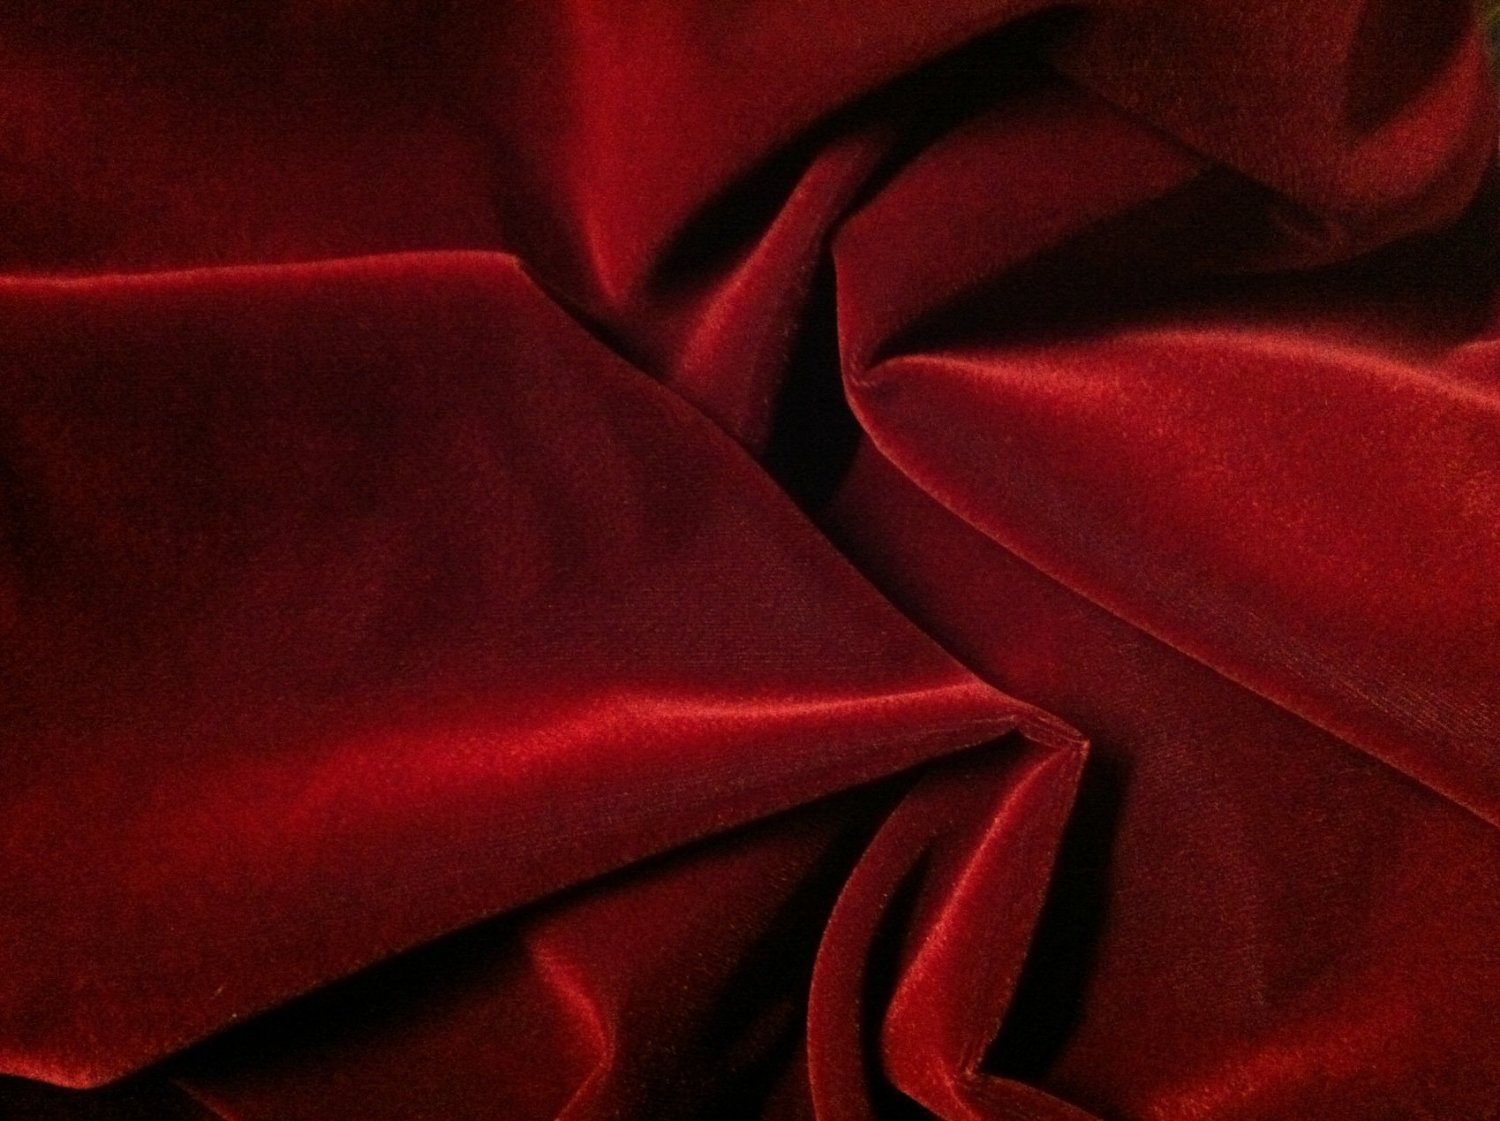 Polyester velvet. Source: Amazon.